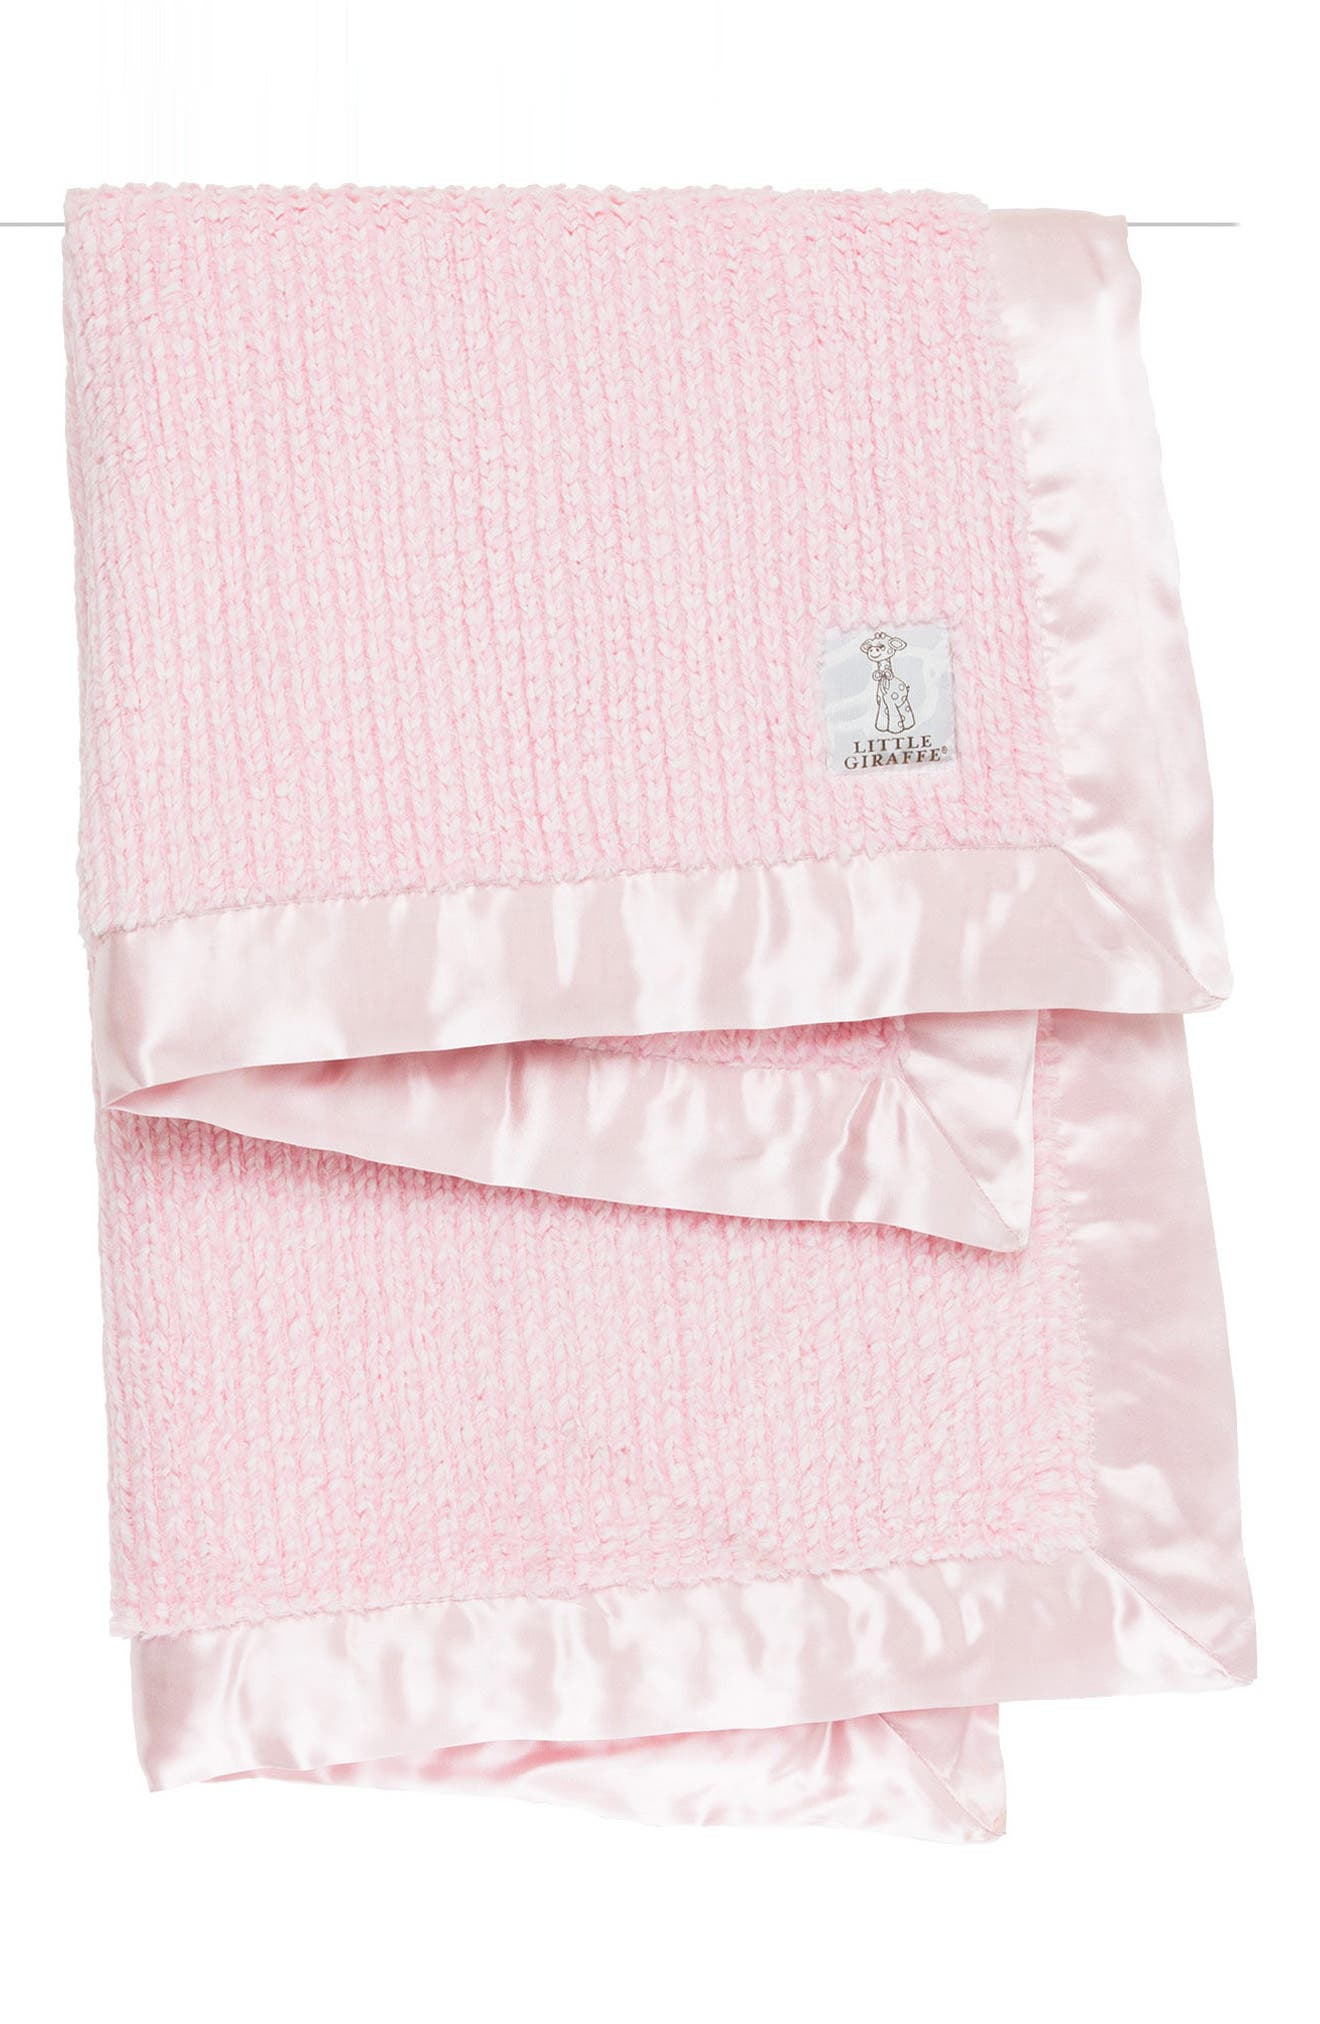 Luxe Herringbone Blanket,                             Main thumbnail 1, color,                             PINK